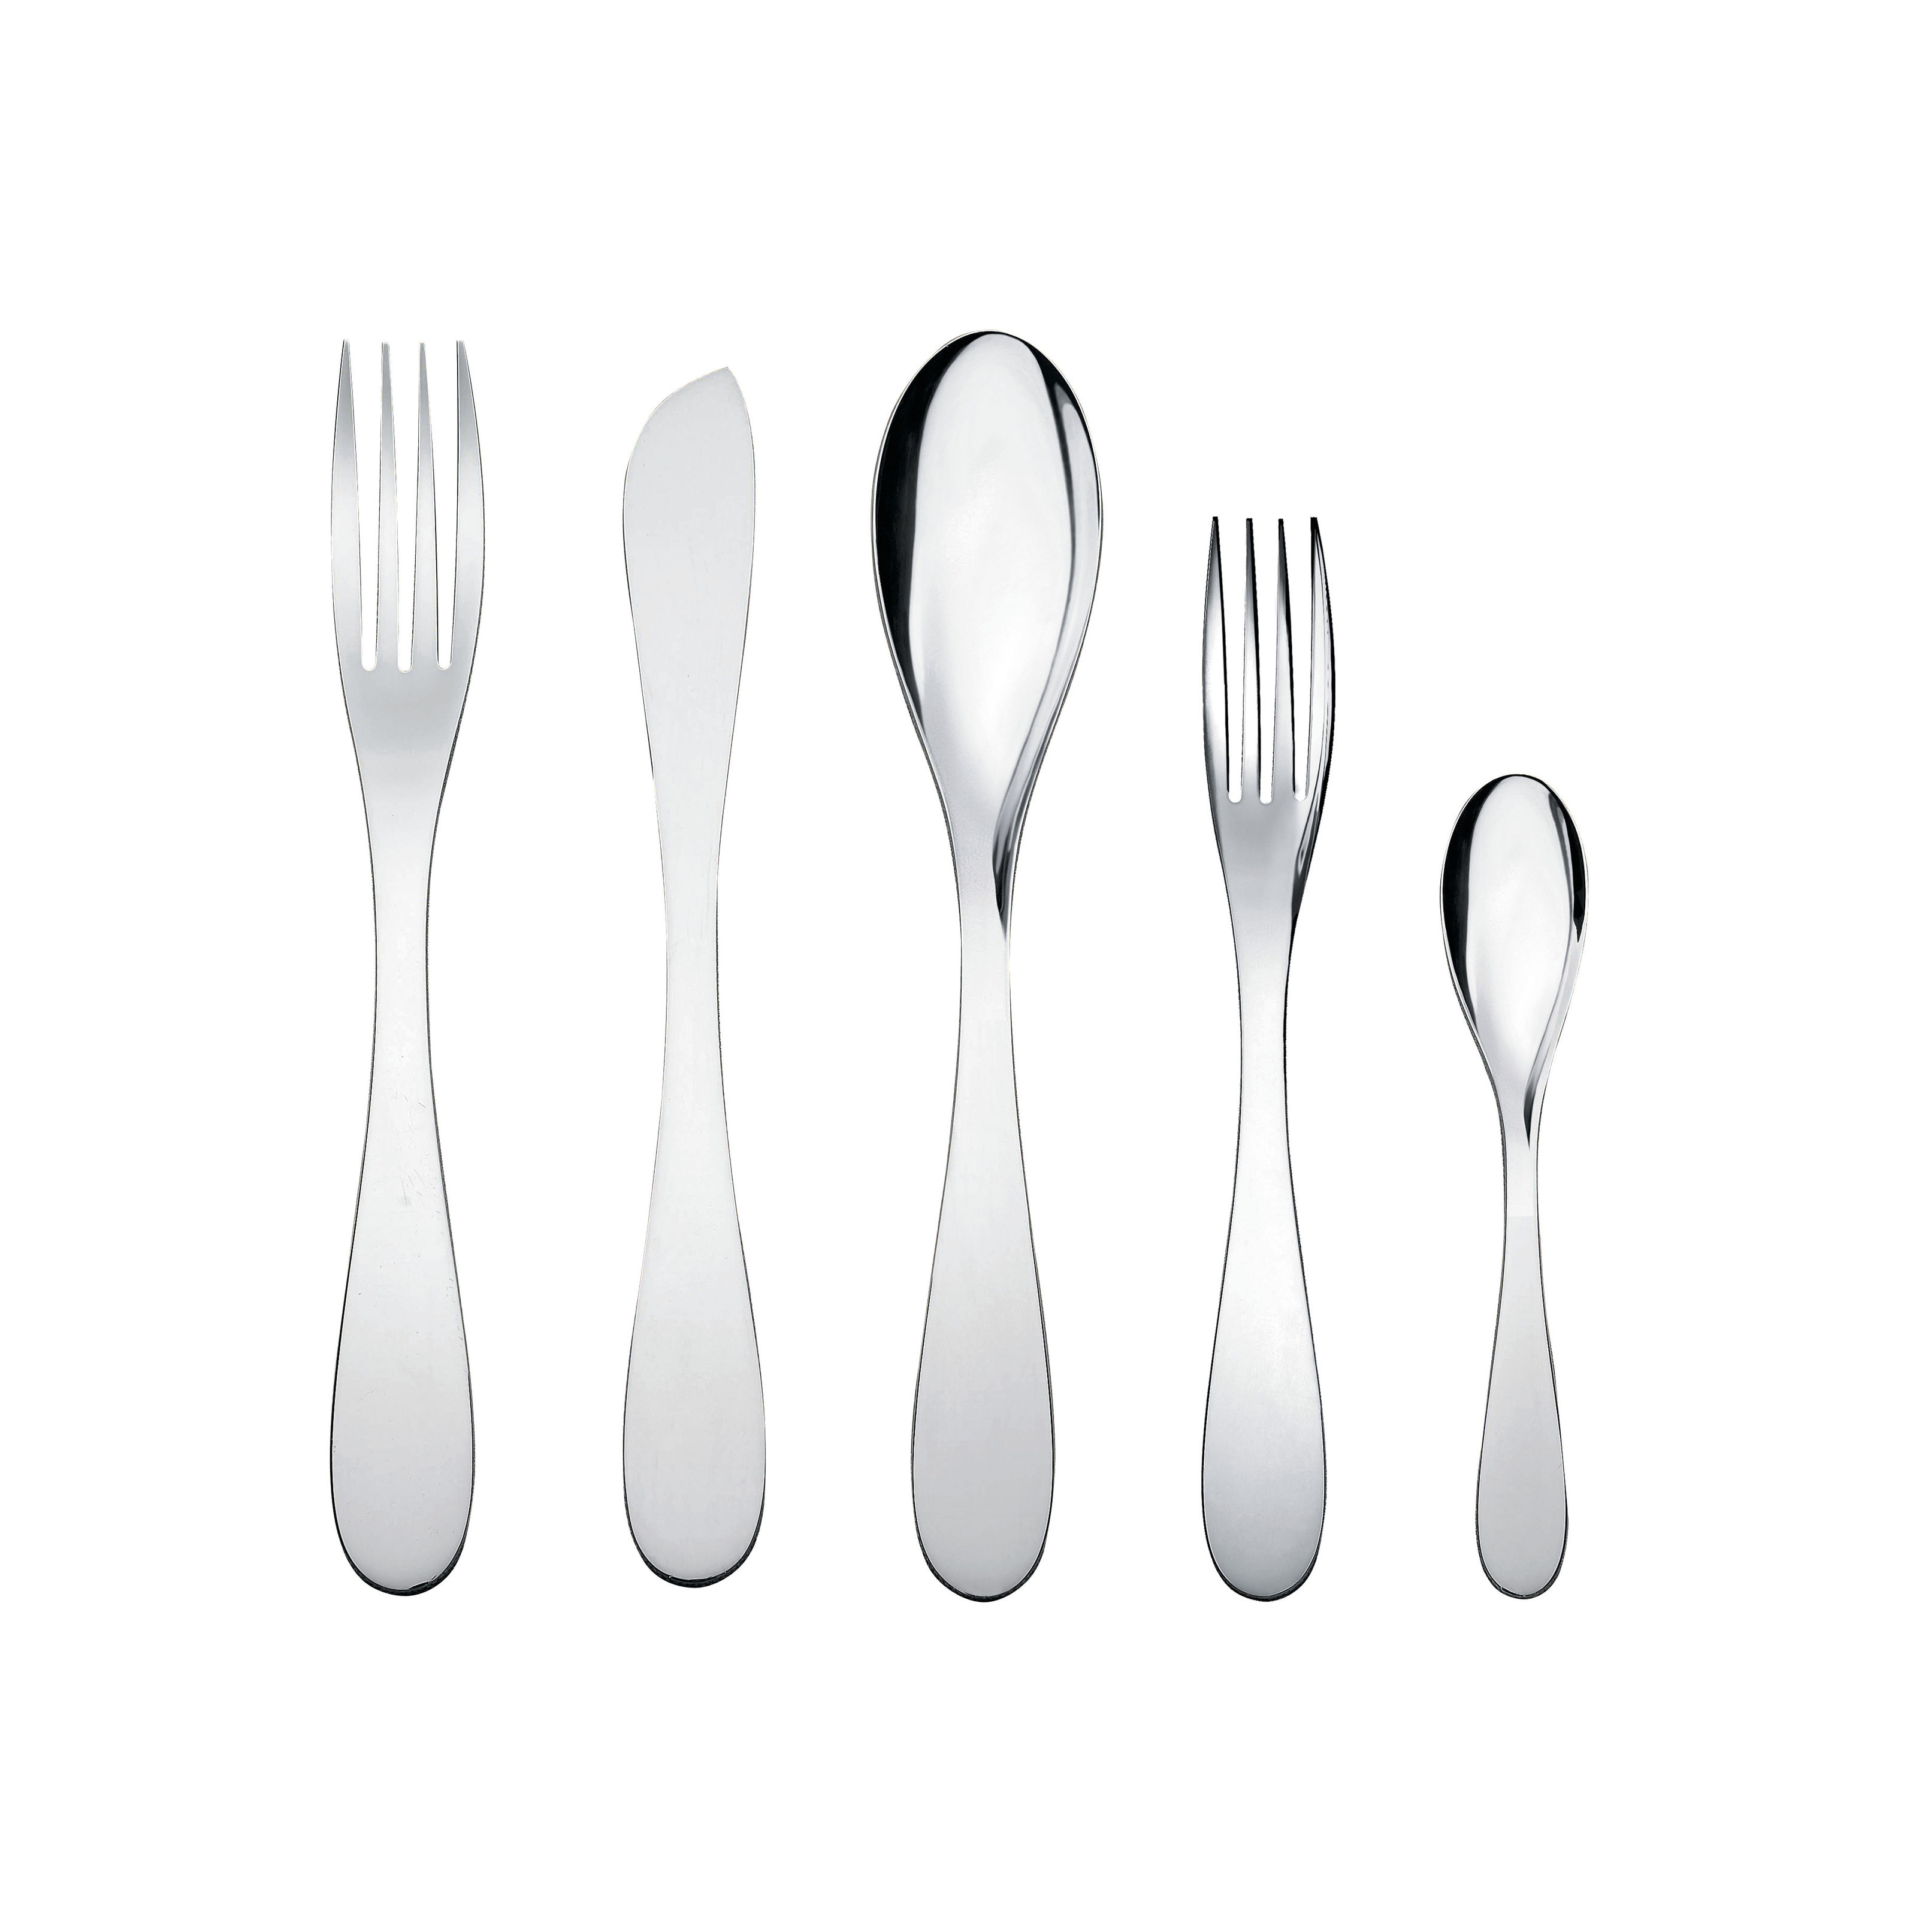 Tableware - Cutlery - Eat.it Cutlery set - 1 person / 5 pieces by Alessi - Polished metal - Stainless steel 18/10